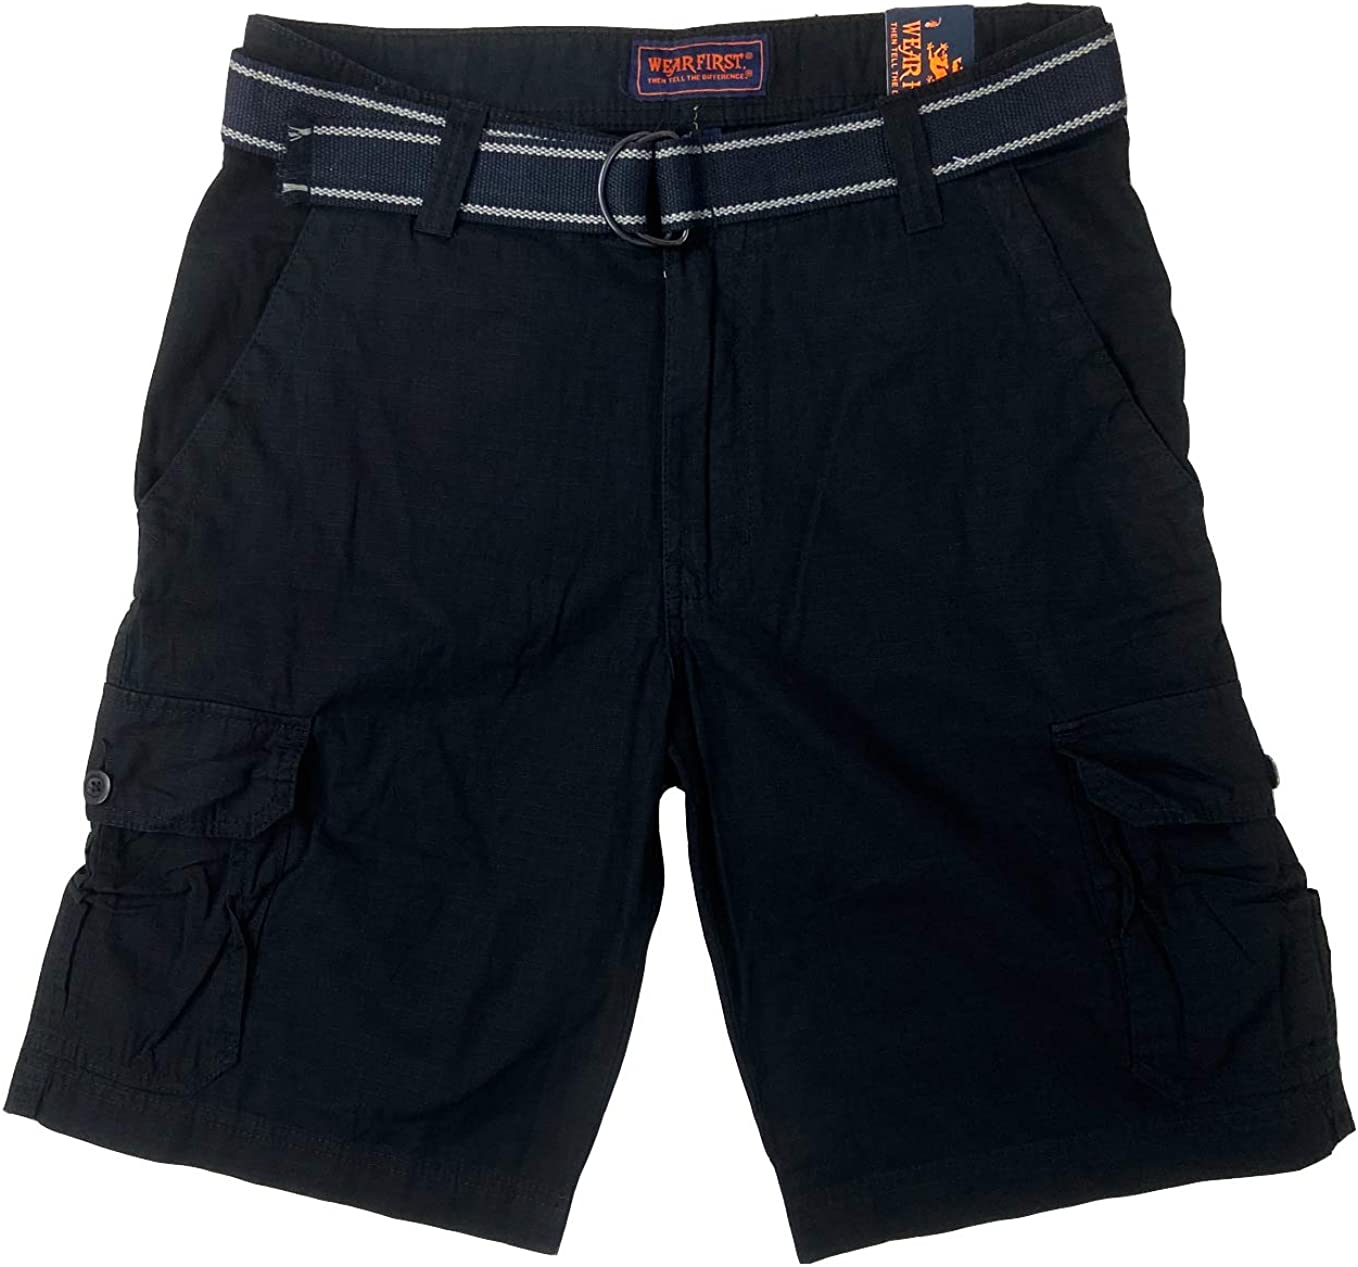 Wearfirst Men's Caution Ripstop Belted Cargo Shorts